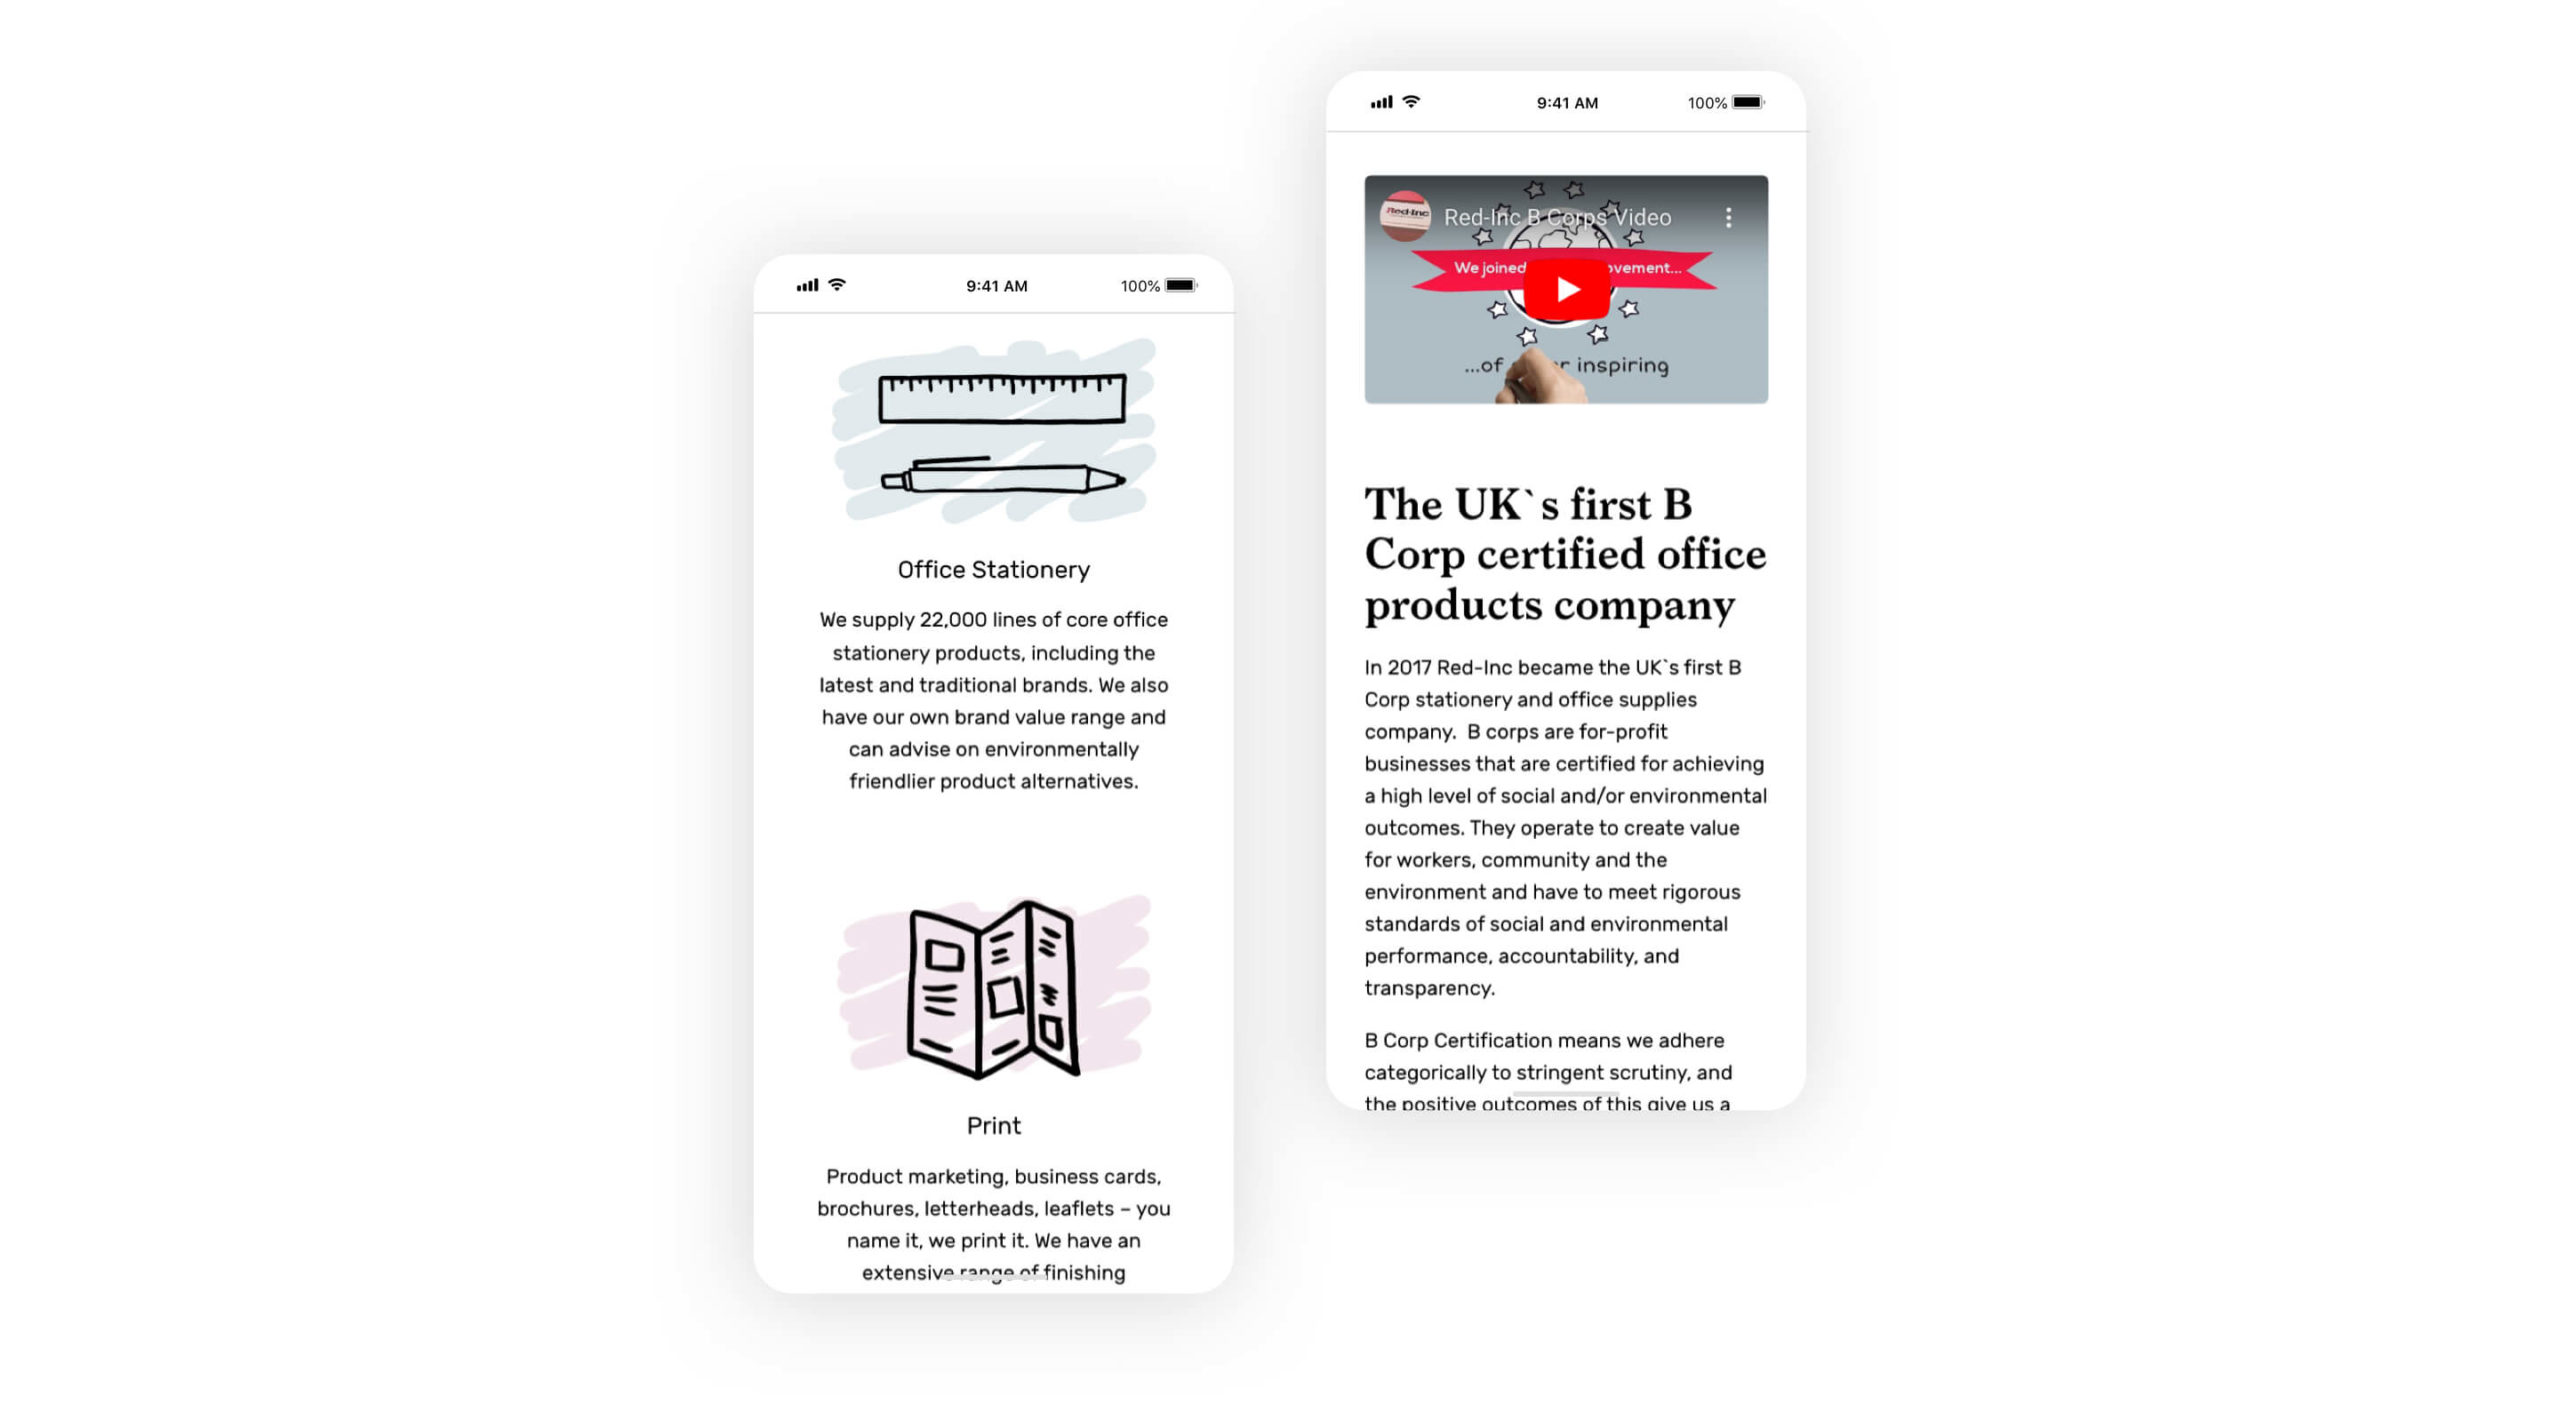 Red inc website in mobile